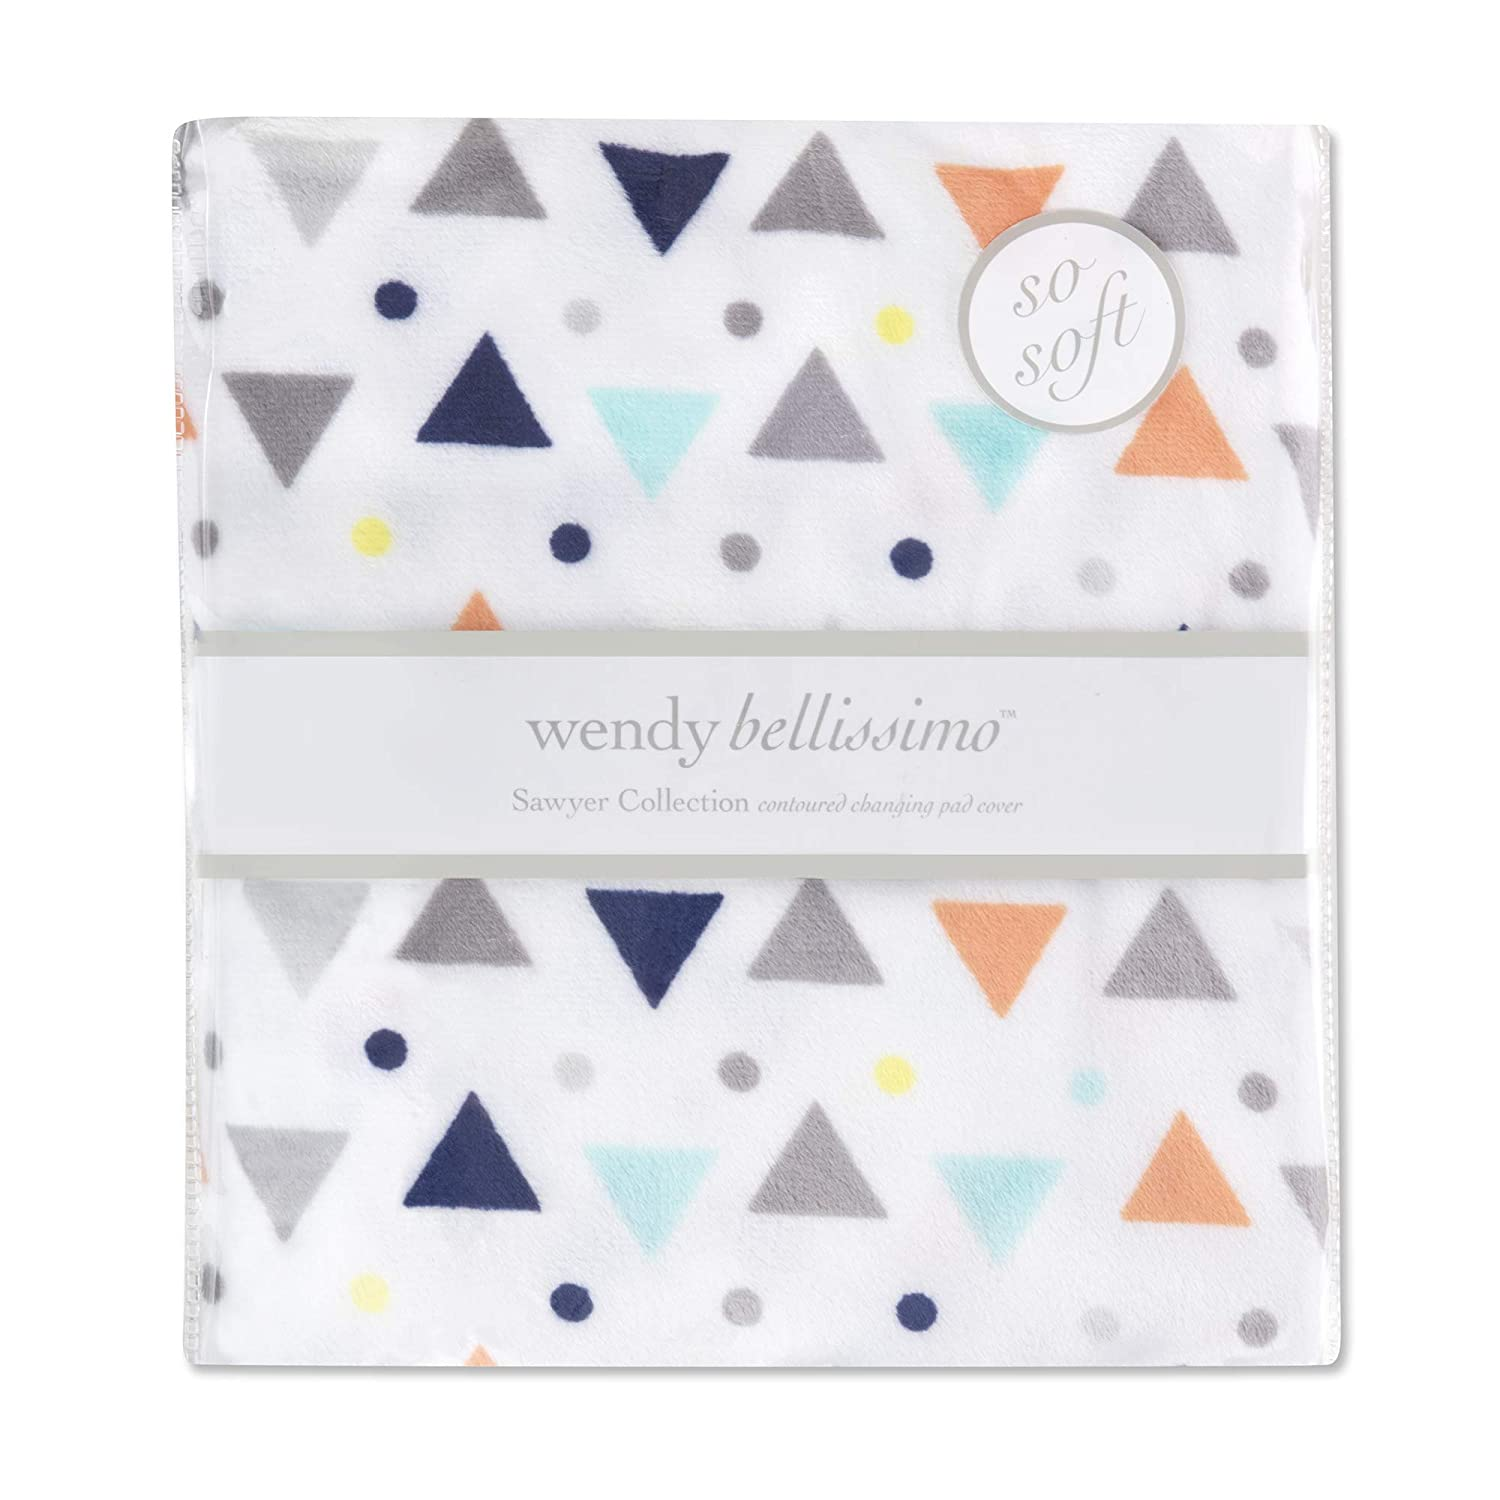 Wendy Bellissimo Velboa Contoured Diaper Pad Cover for Diaper Changer (32x16x6) from The Sawyer Collection - Triangle Print in Navy, Turquoise, Orange & Grey